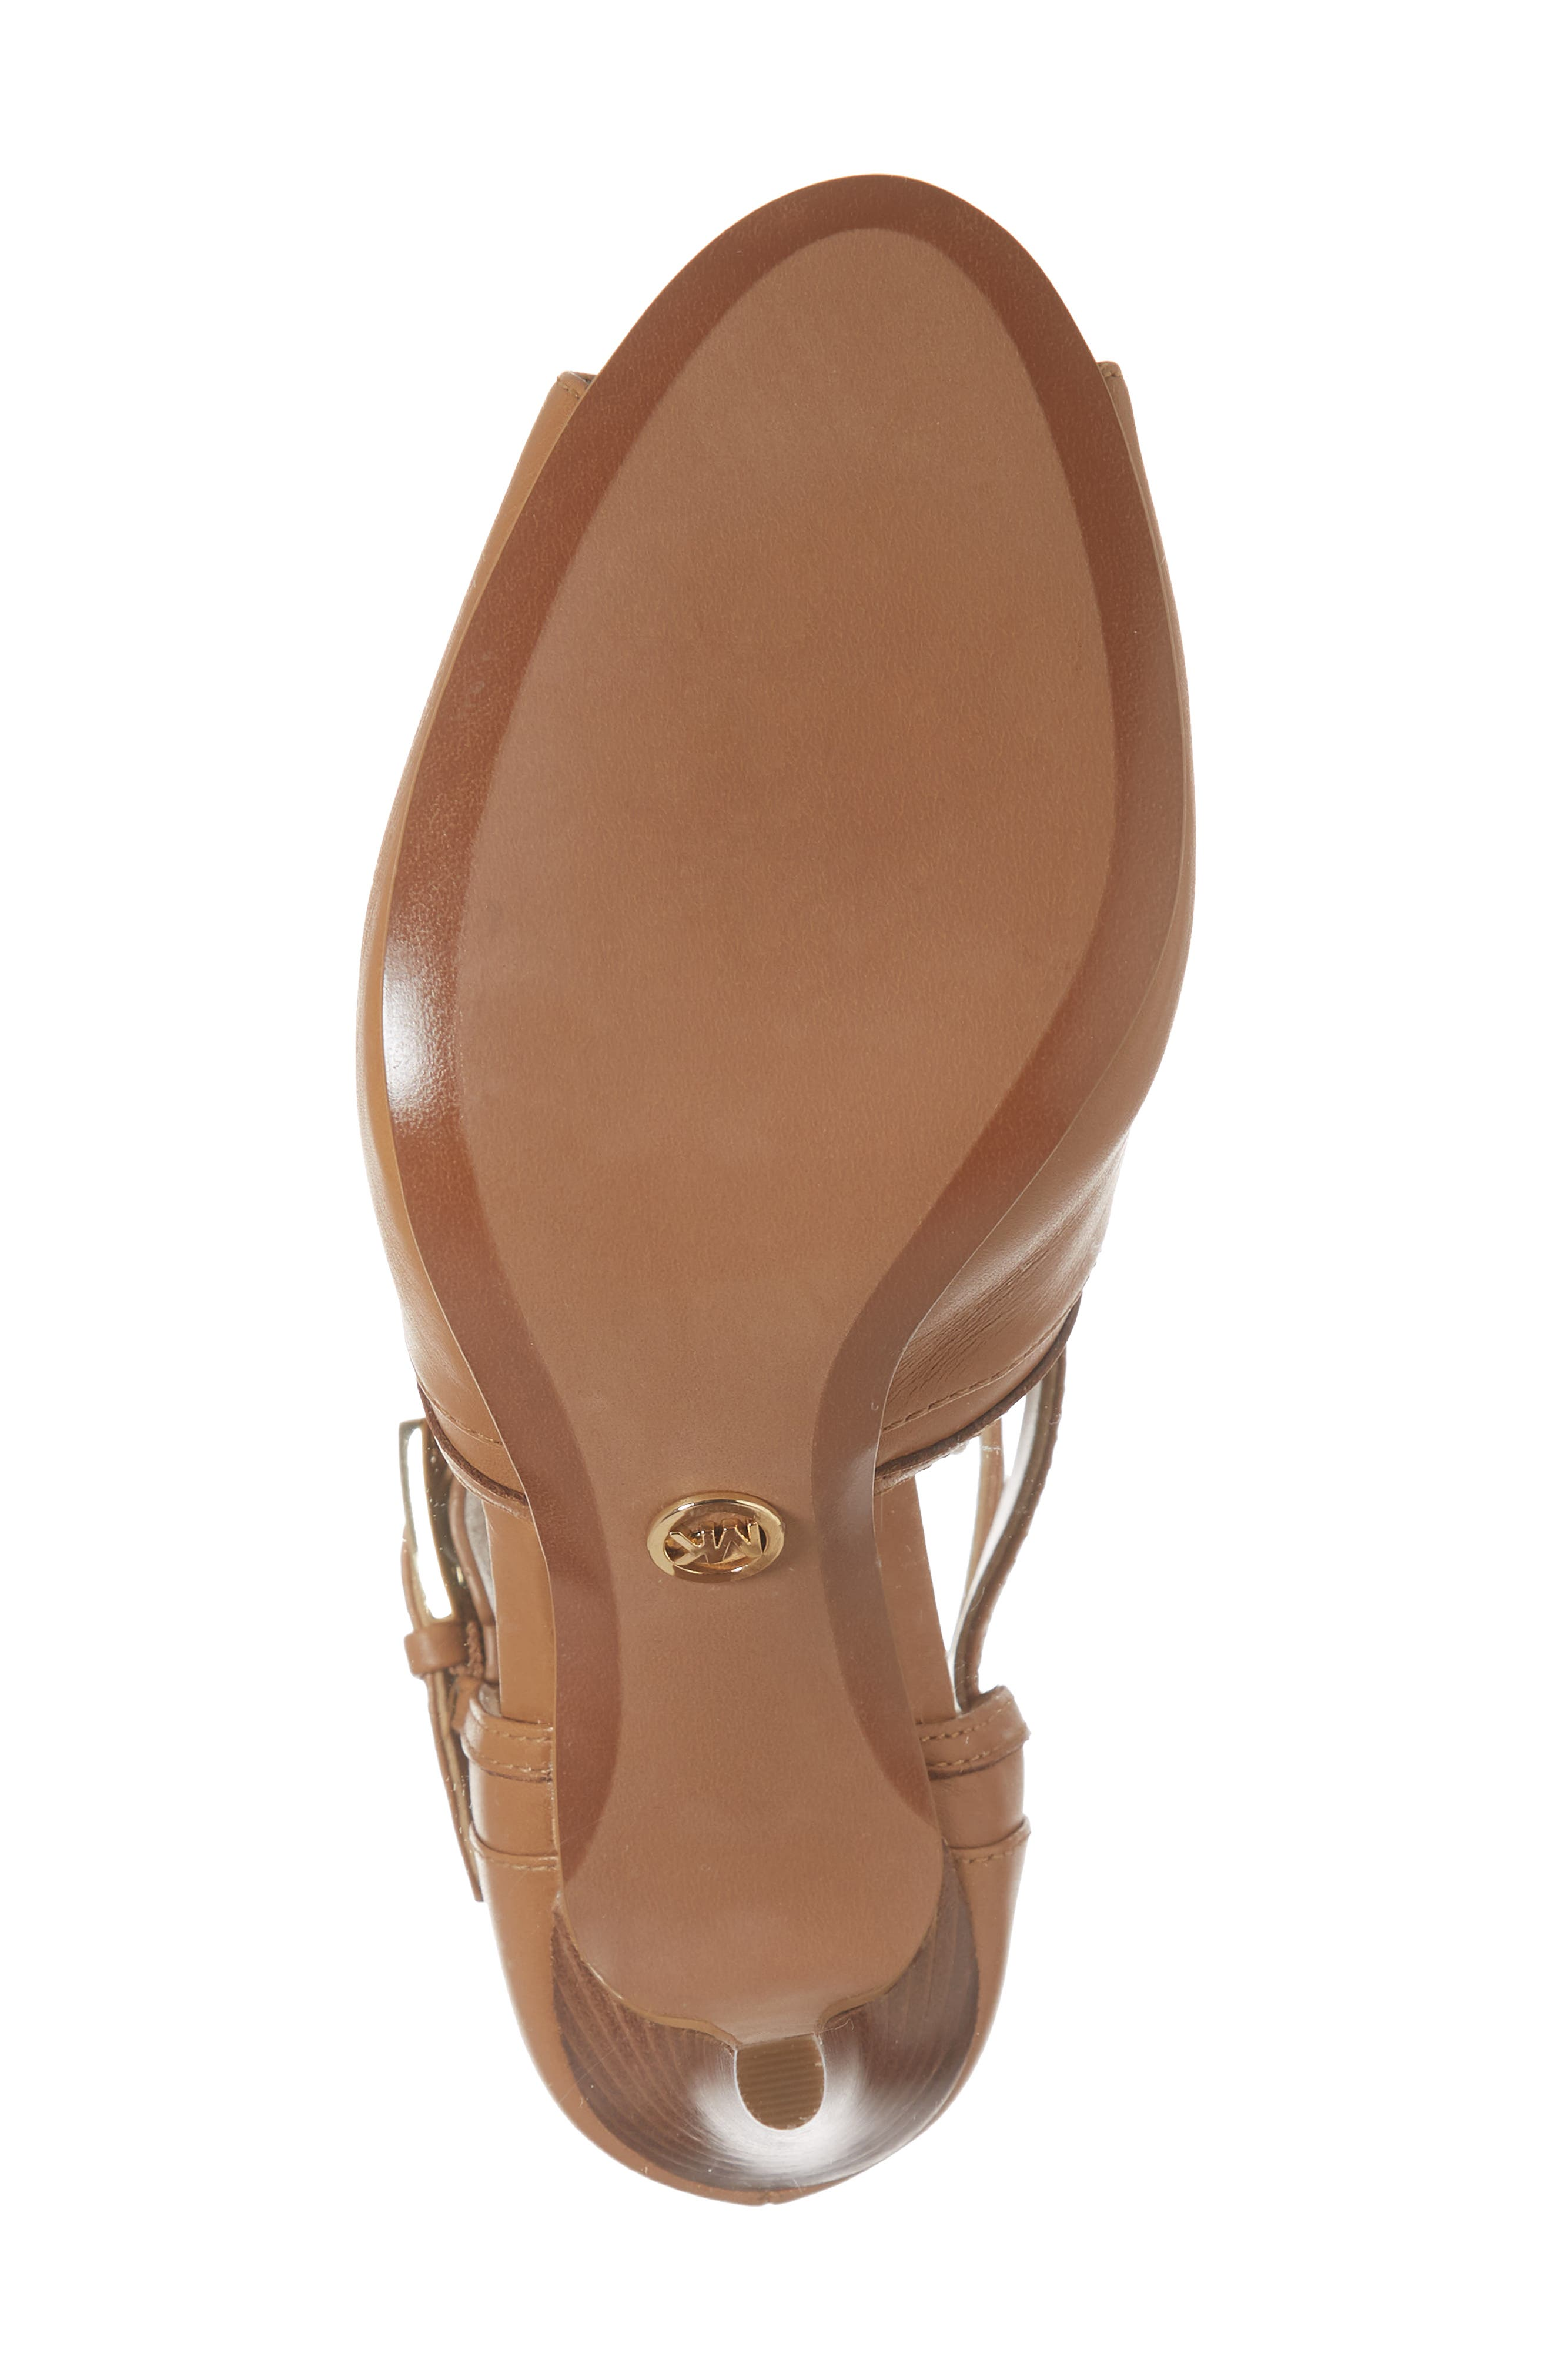 MICHAEL MICHAEL KORS, Blaze Peep Toe Buckle Bootie, Alternate thumbnail 6, color, ACORN LEATHER